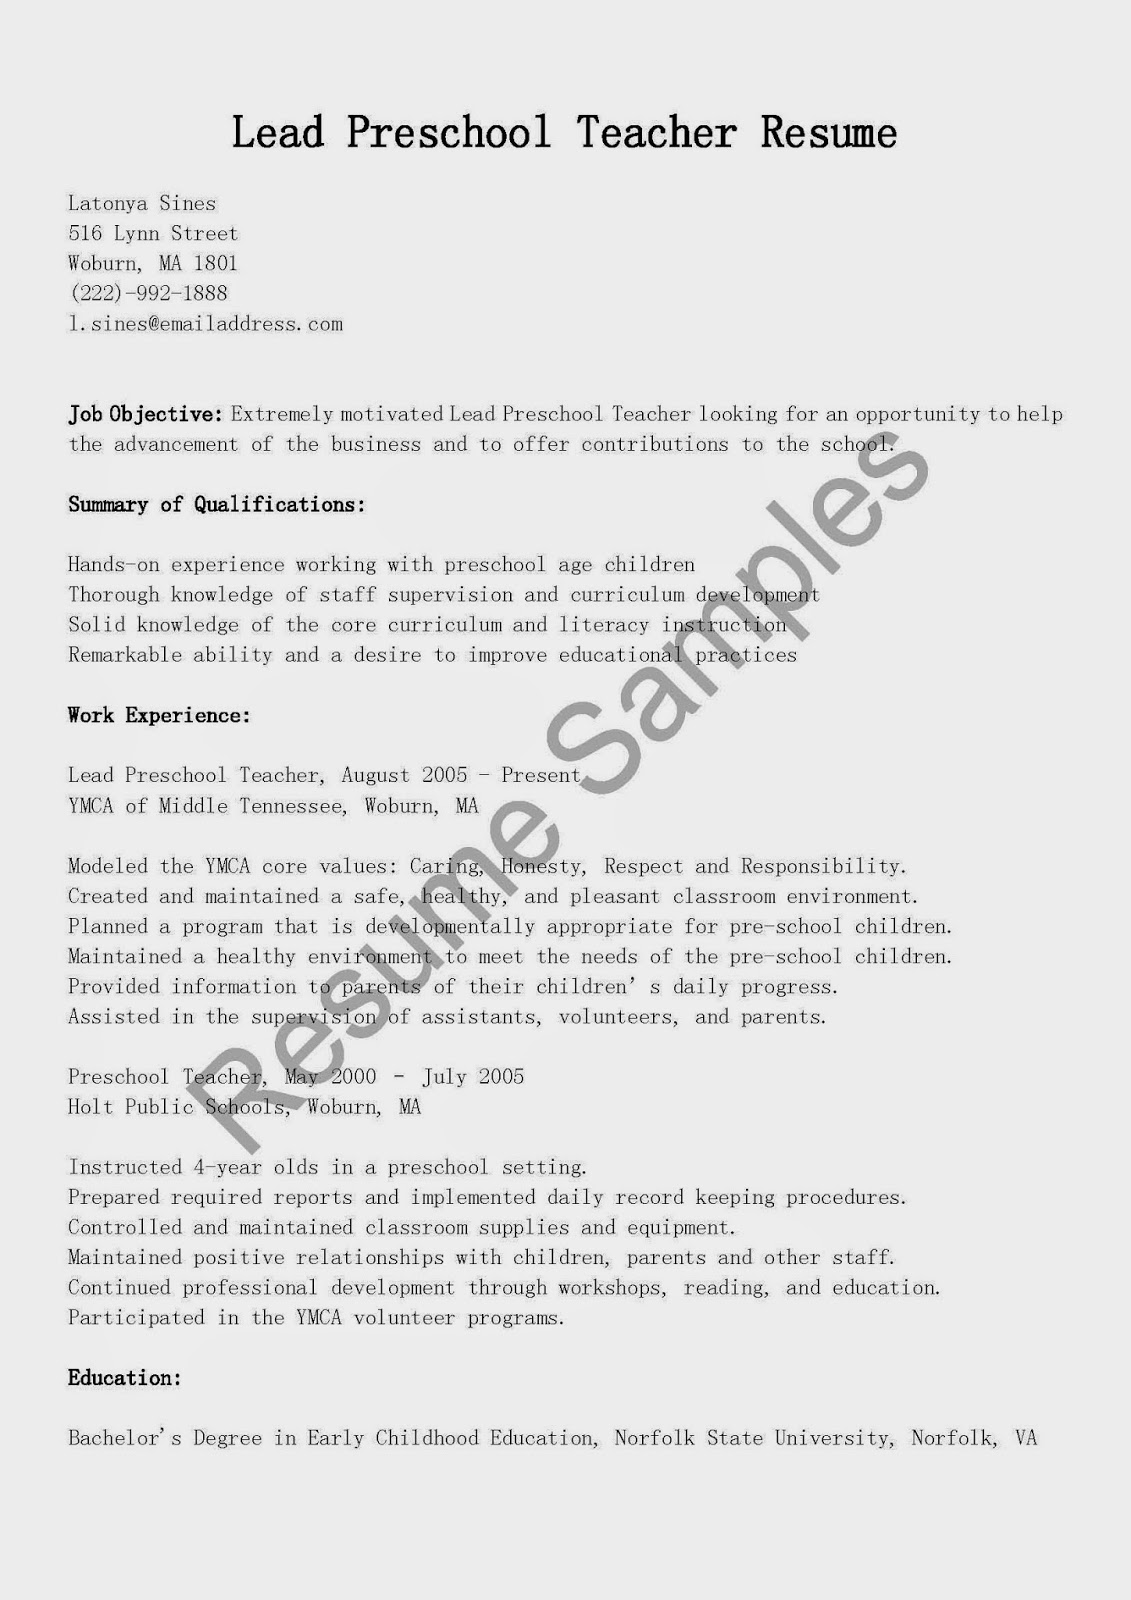 how to write resume for teacher job